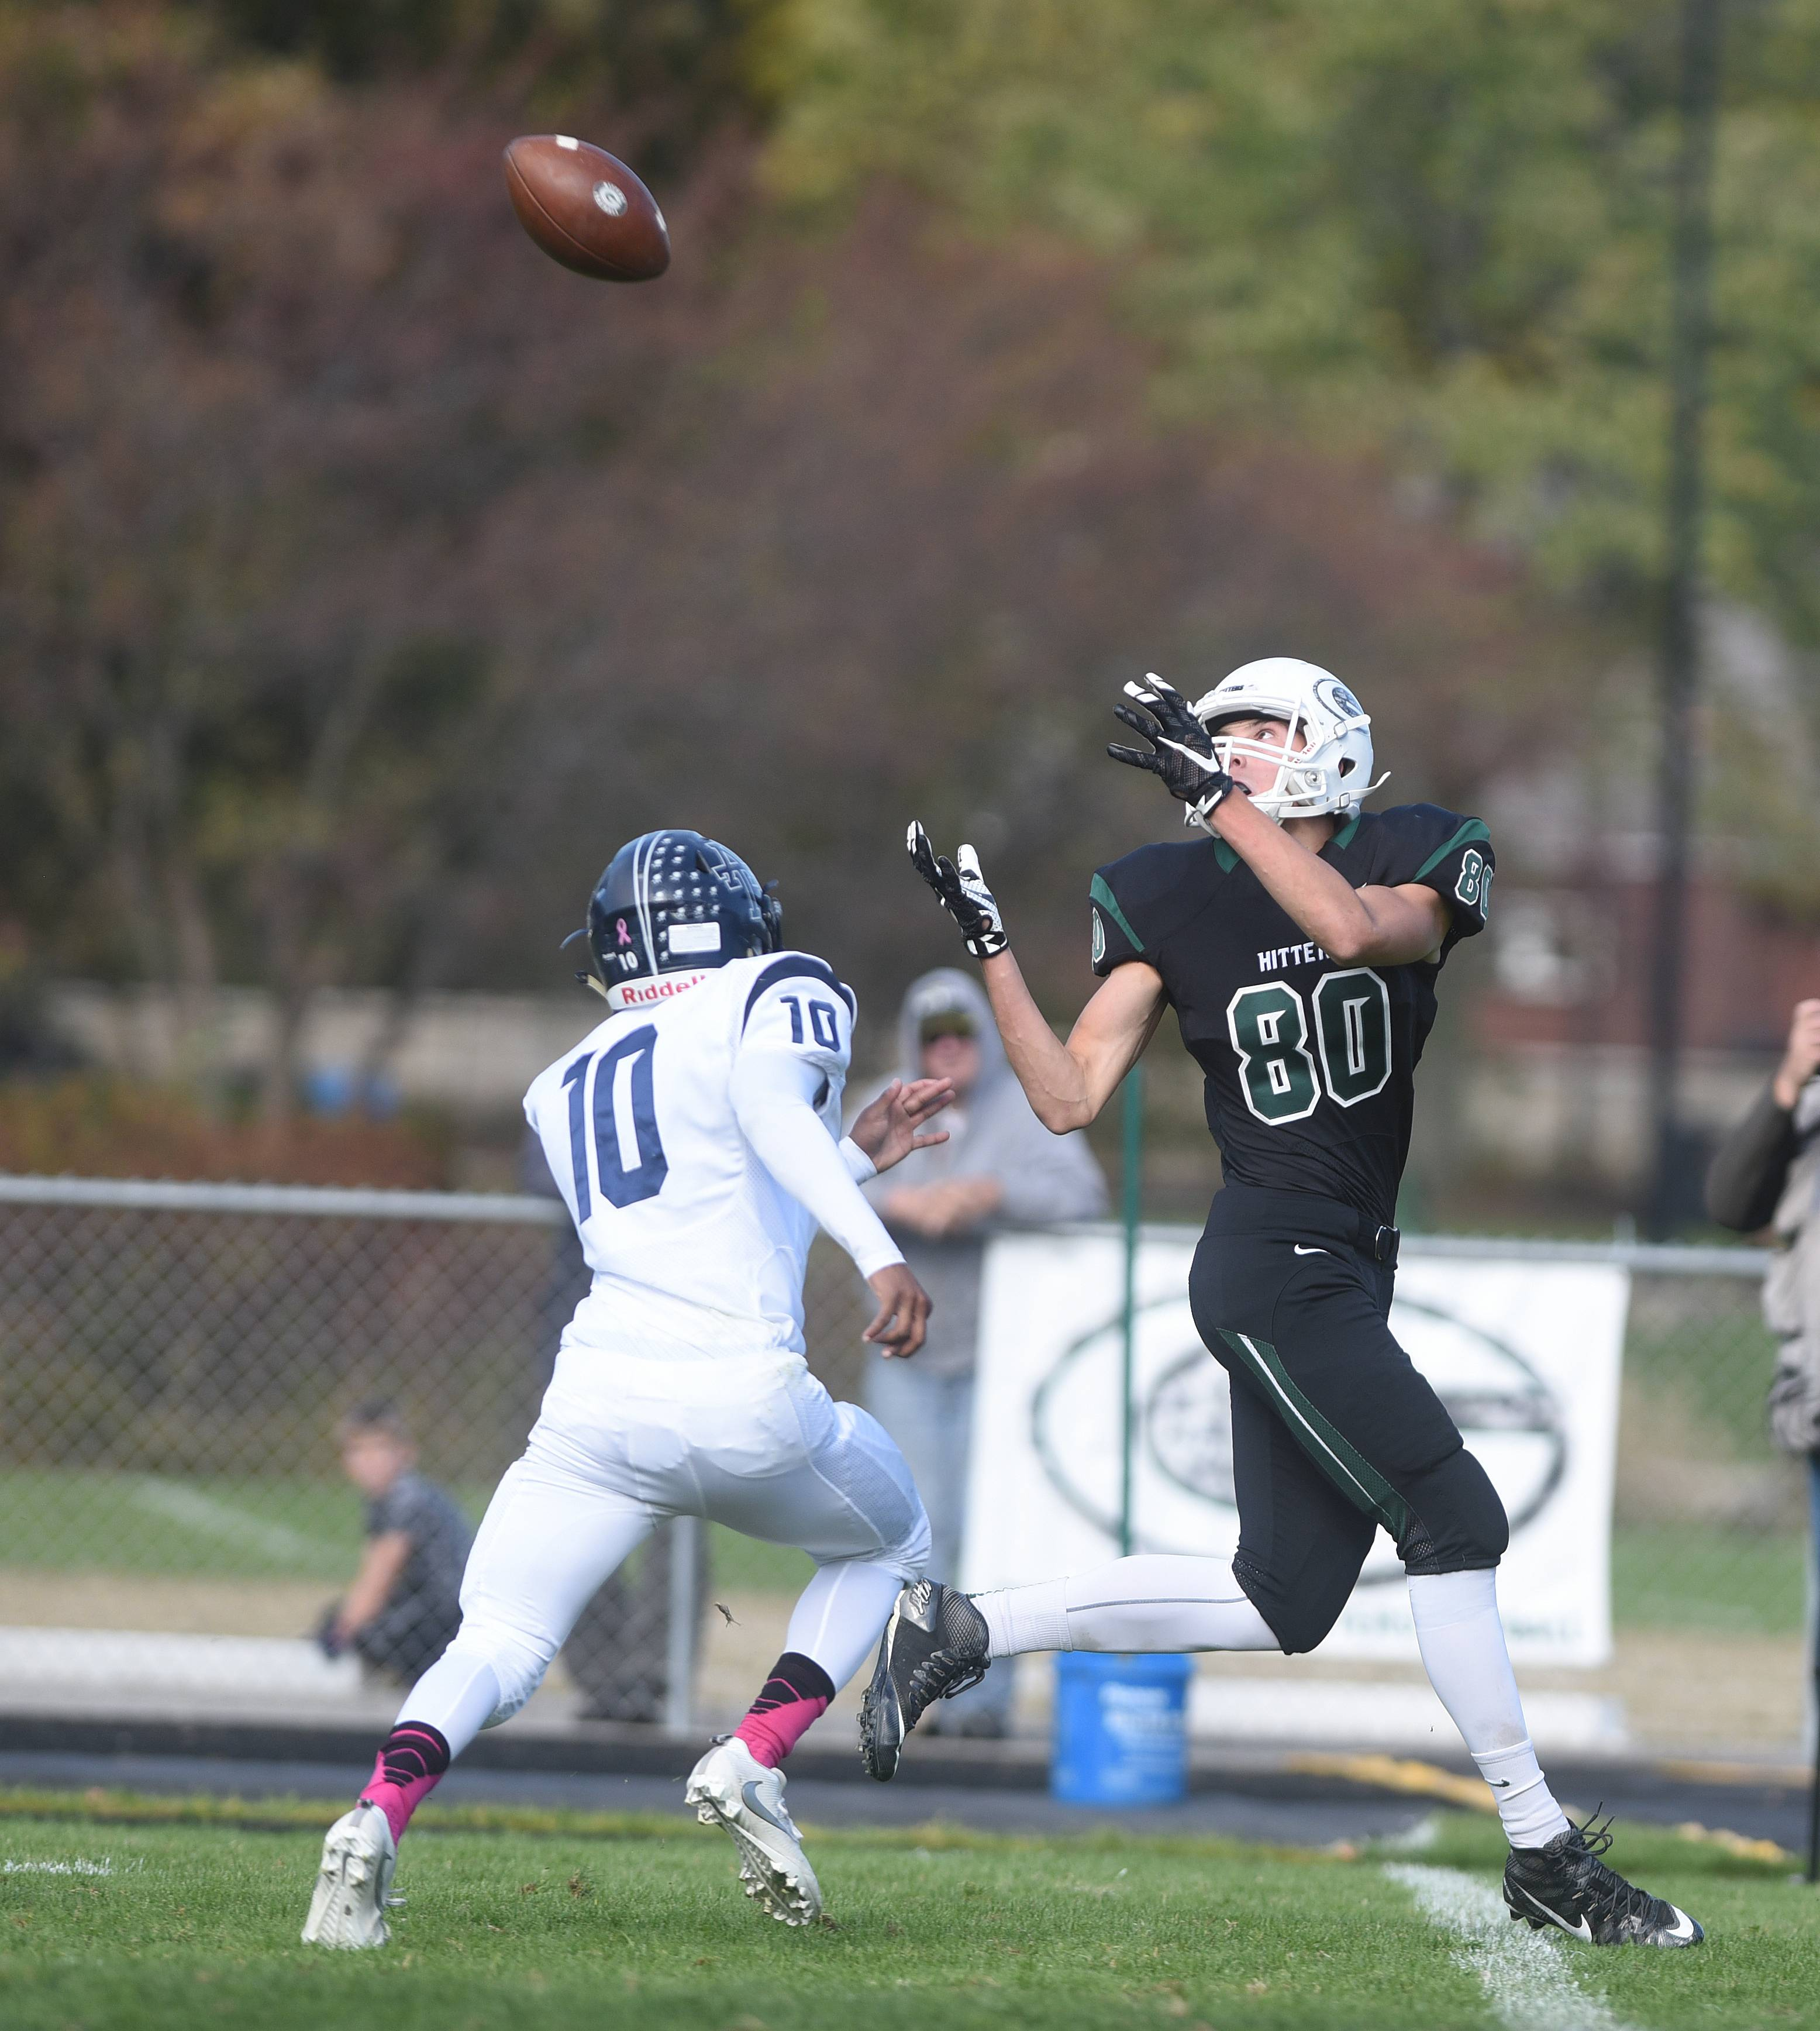 Addison Trail's Christopher Purdy (10) and Glenbard West's Alec Pierce (80) chase a pass during the Addison Trail at Glenbard West football game Saturday.